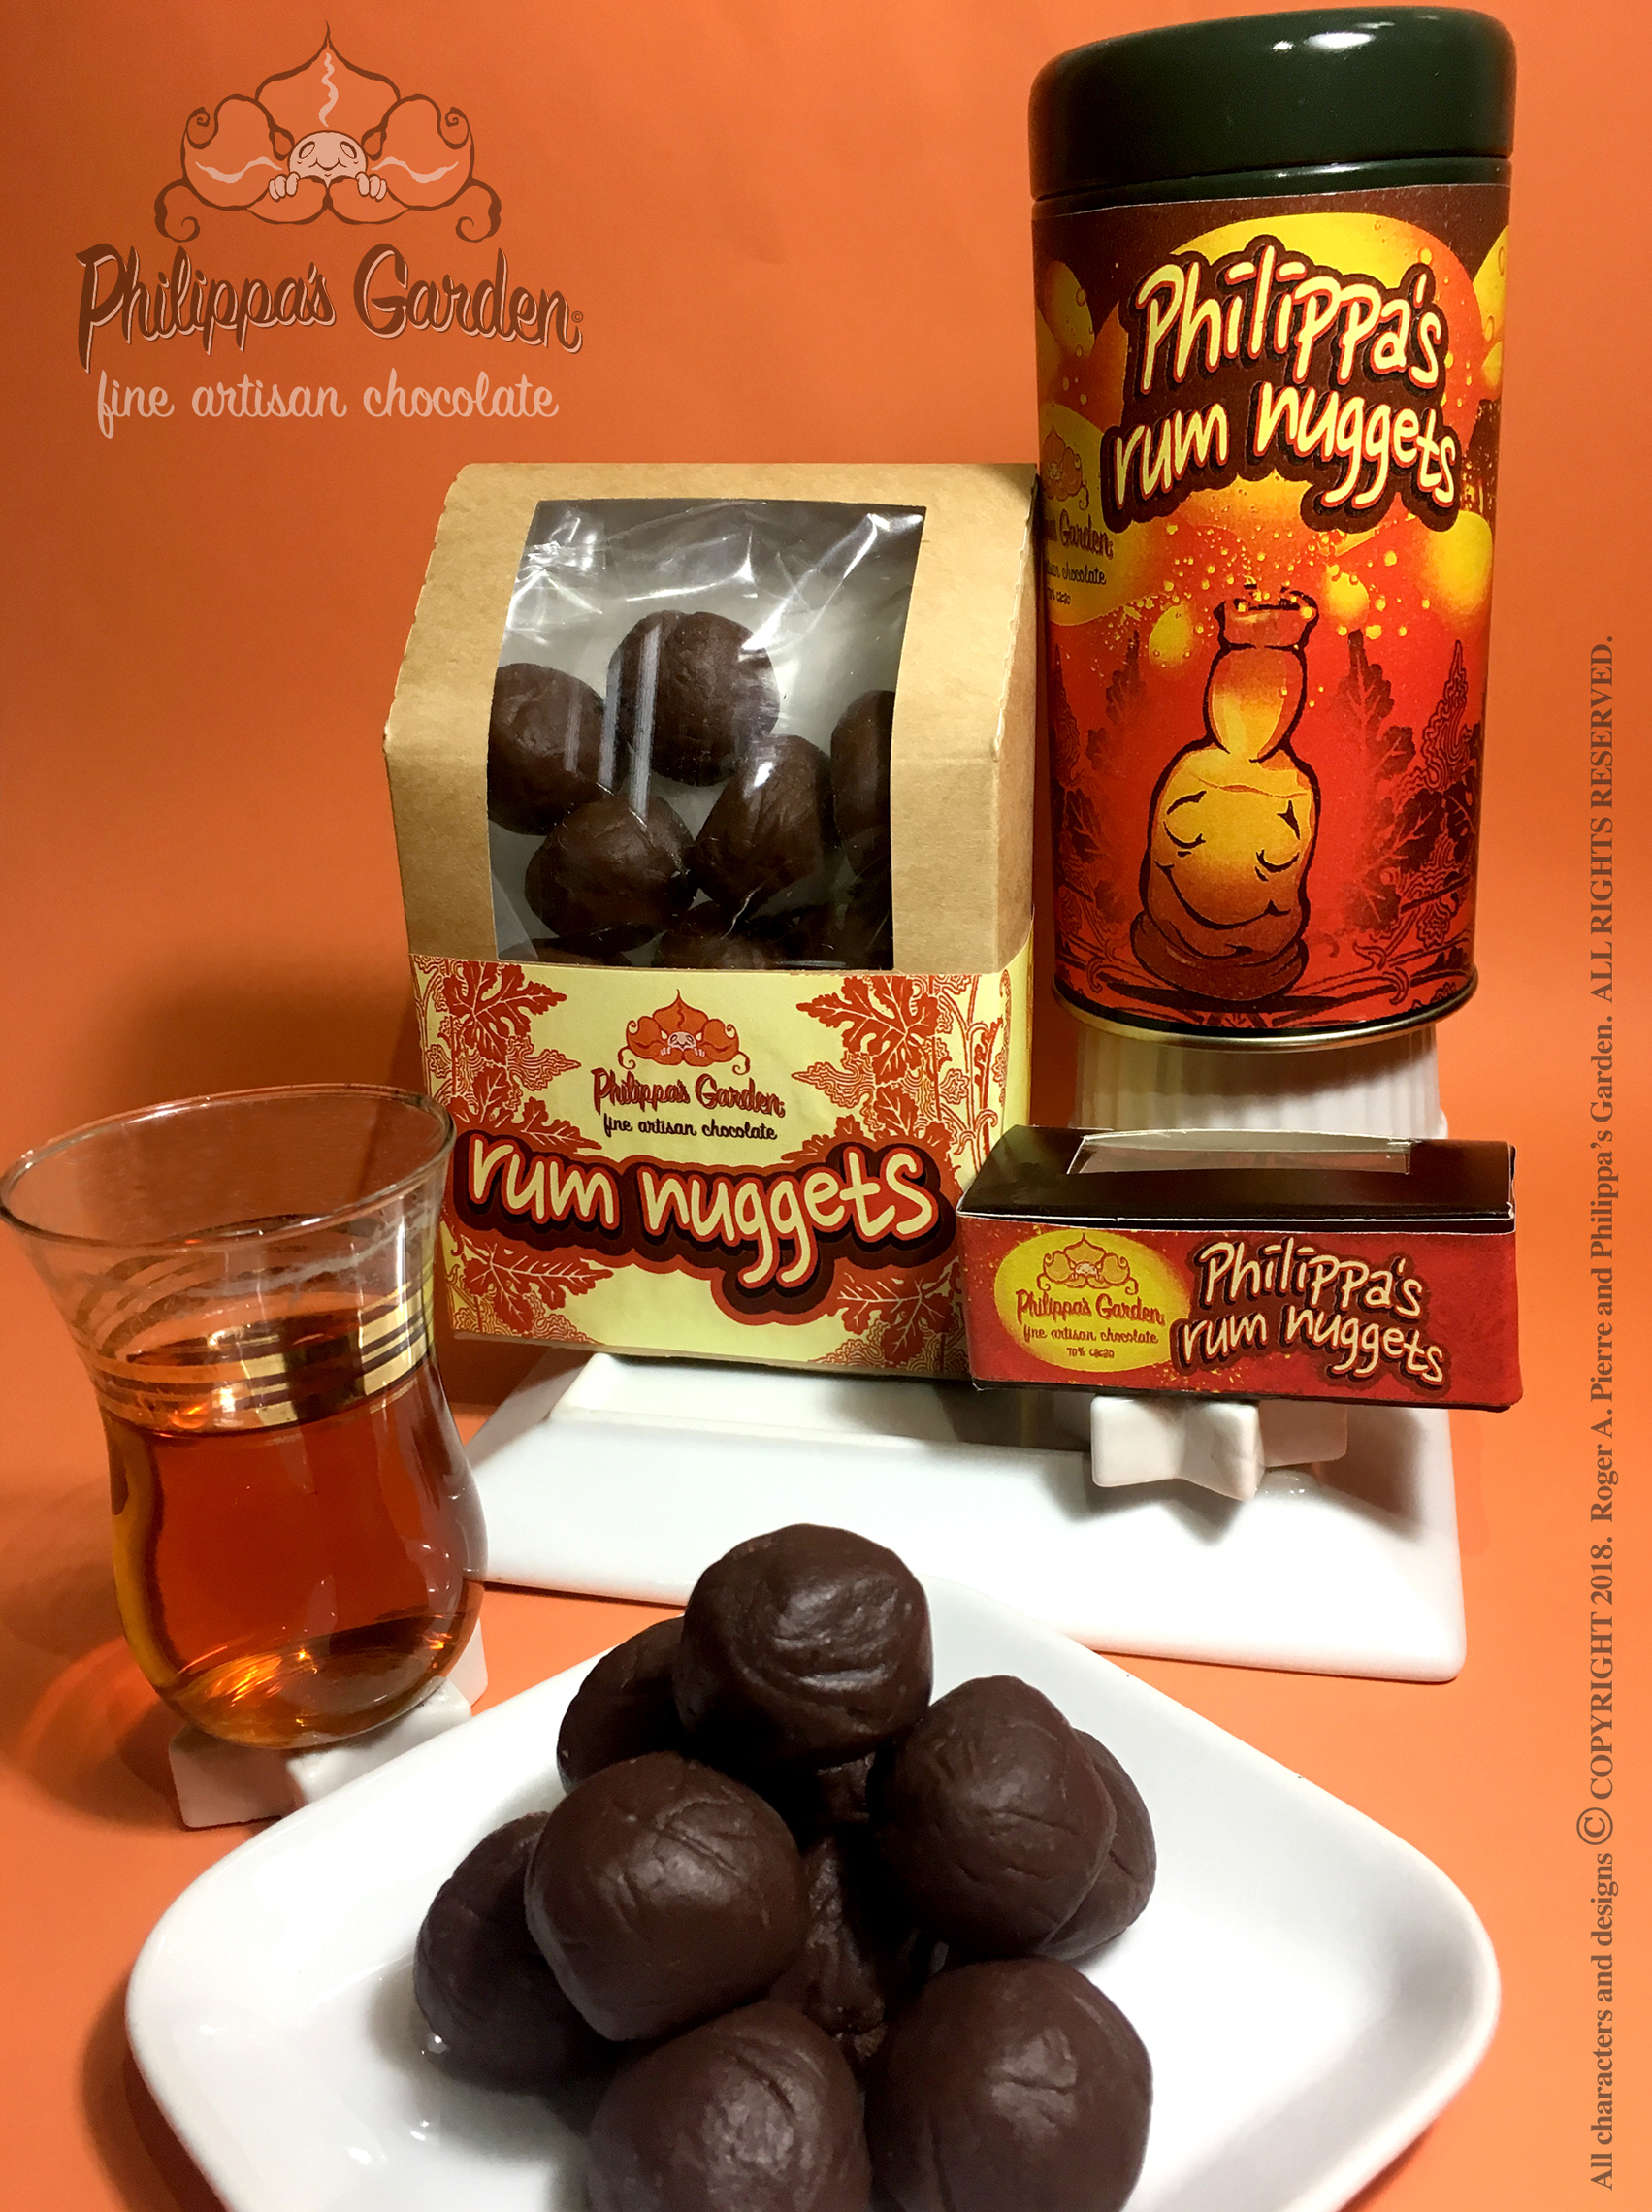 PHILIPPA'S RUM NUGGETS   Dark chocolate spiked with a dash of Trinidad Rum and coated in toppings like nuts, seeds or sprinkles. (Other alcohol options include vodka, rum or liqueurs)  Available in 2-piece boxes, 8-piece boxes or 10 piece tins